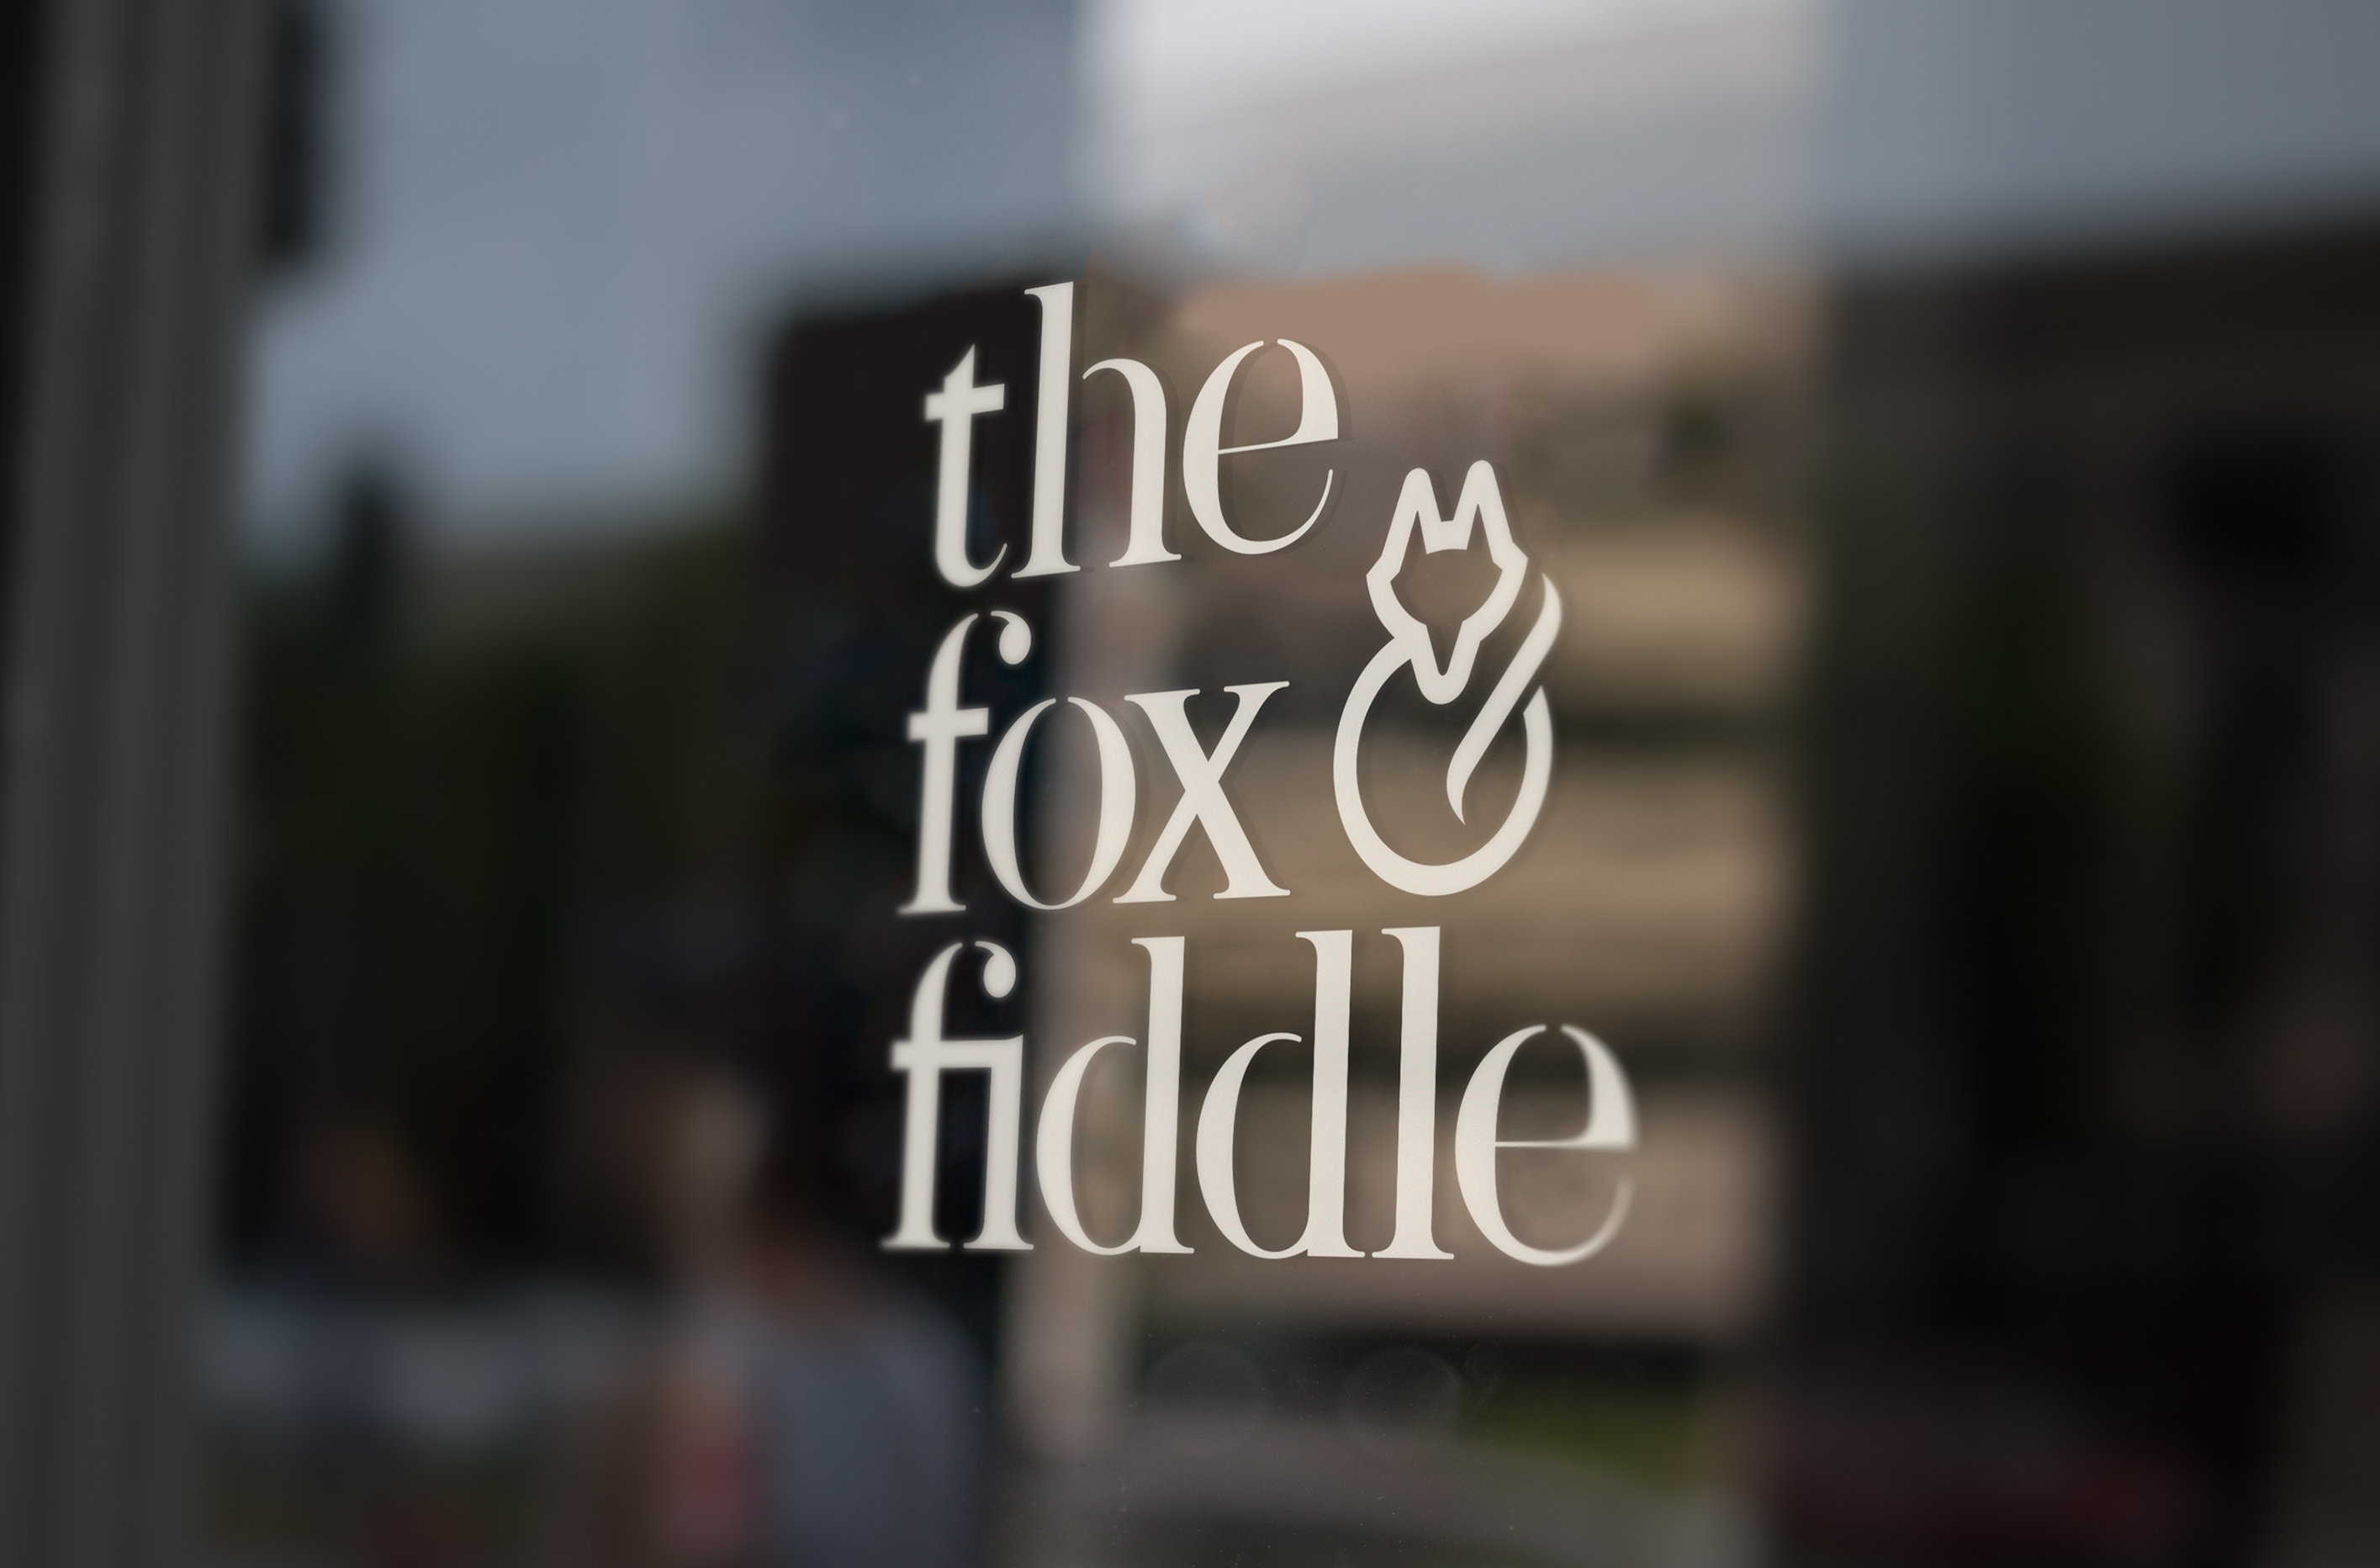 Fox&Fiddle window